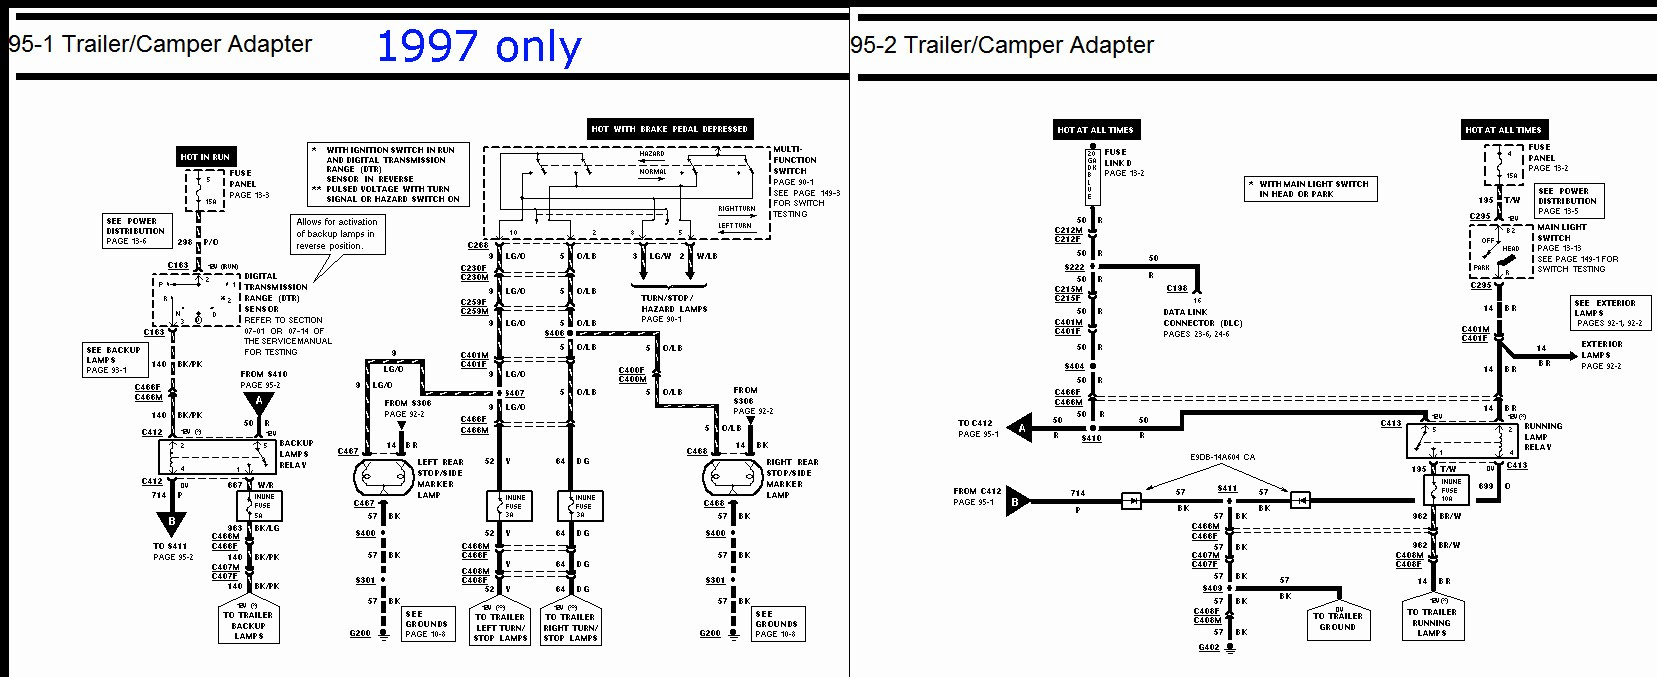 Top Hat Trailers Wire Schematic | Manual E-Books - Top Hat Trailer Wiring Diagram